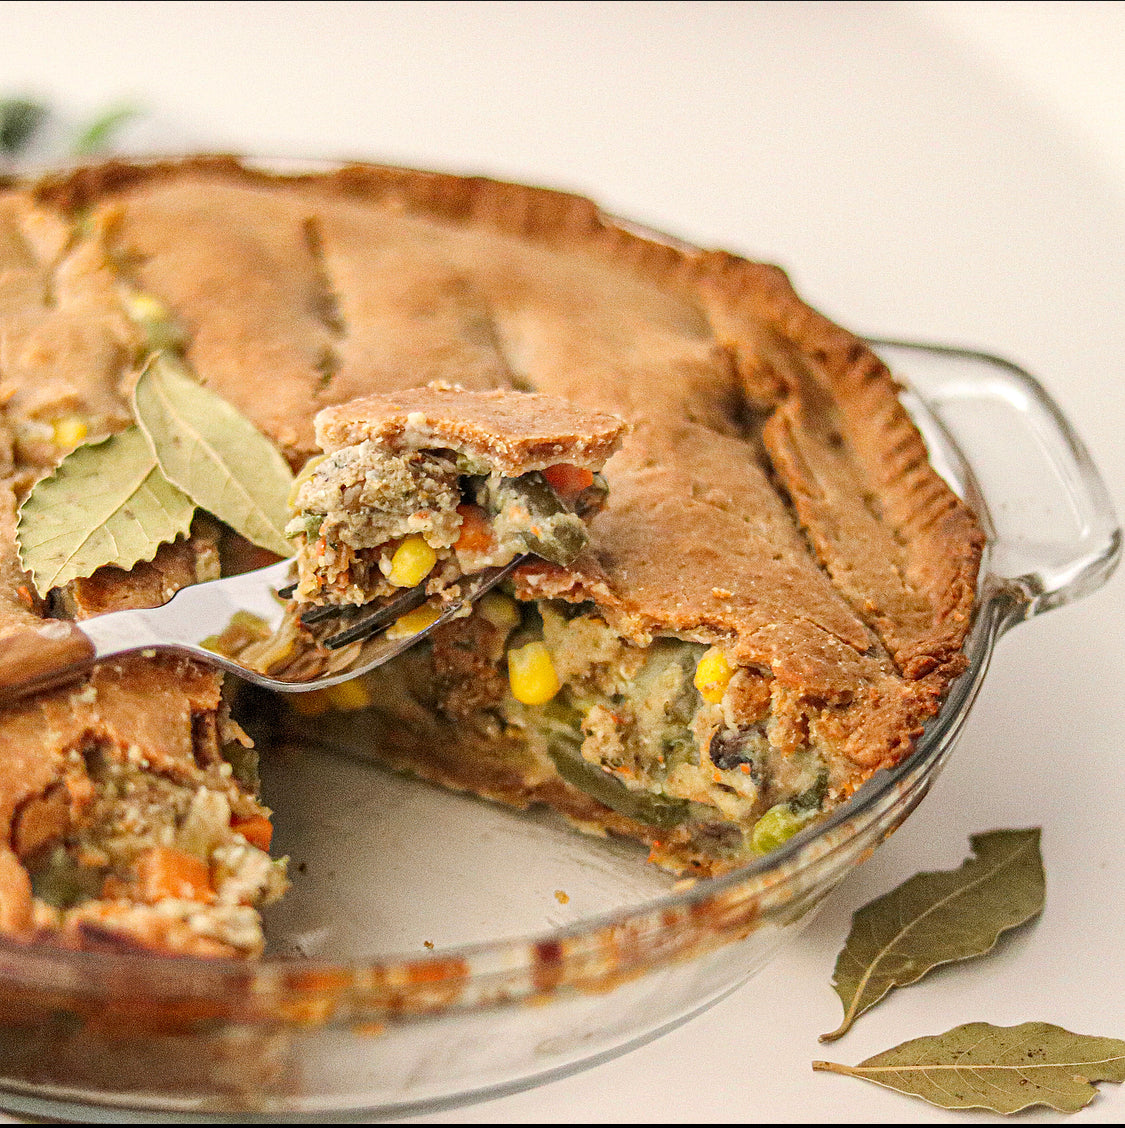 NexVeg Vegan Pot Pie